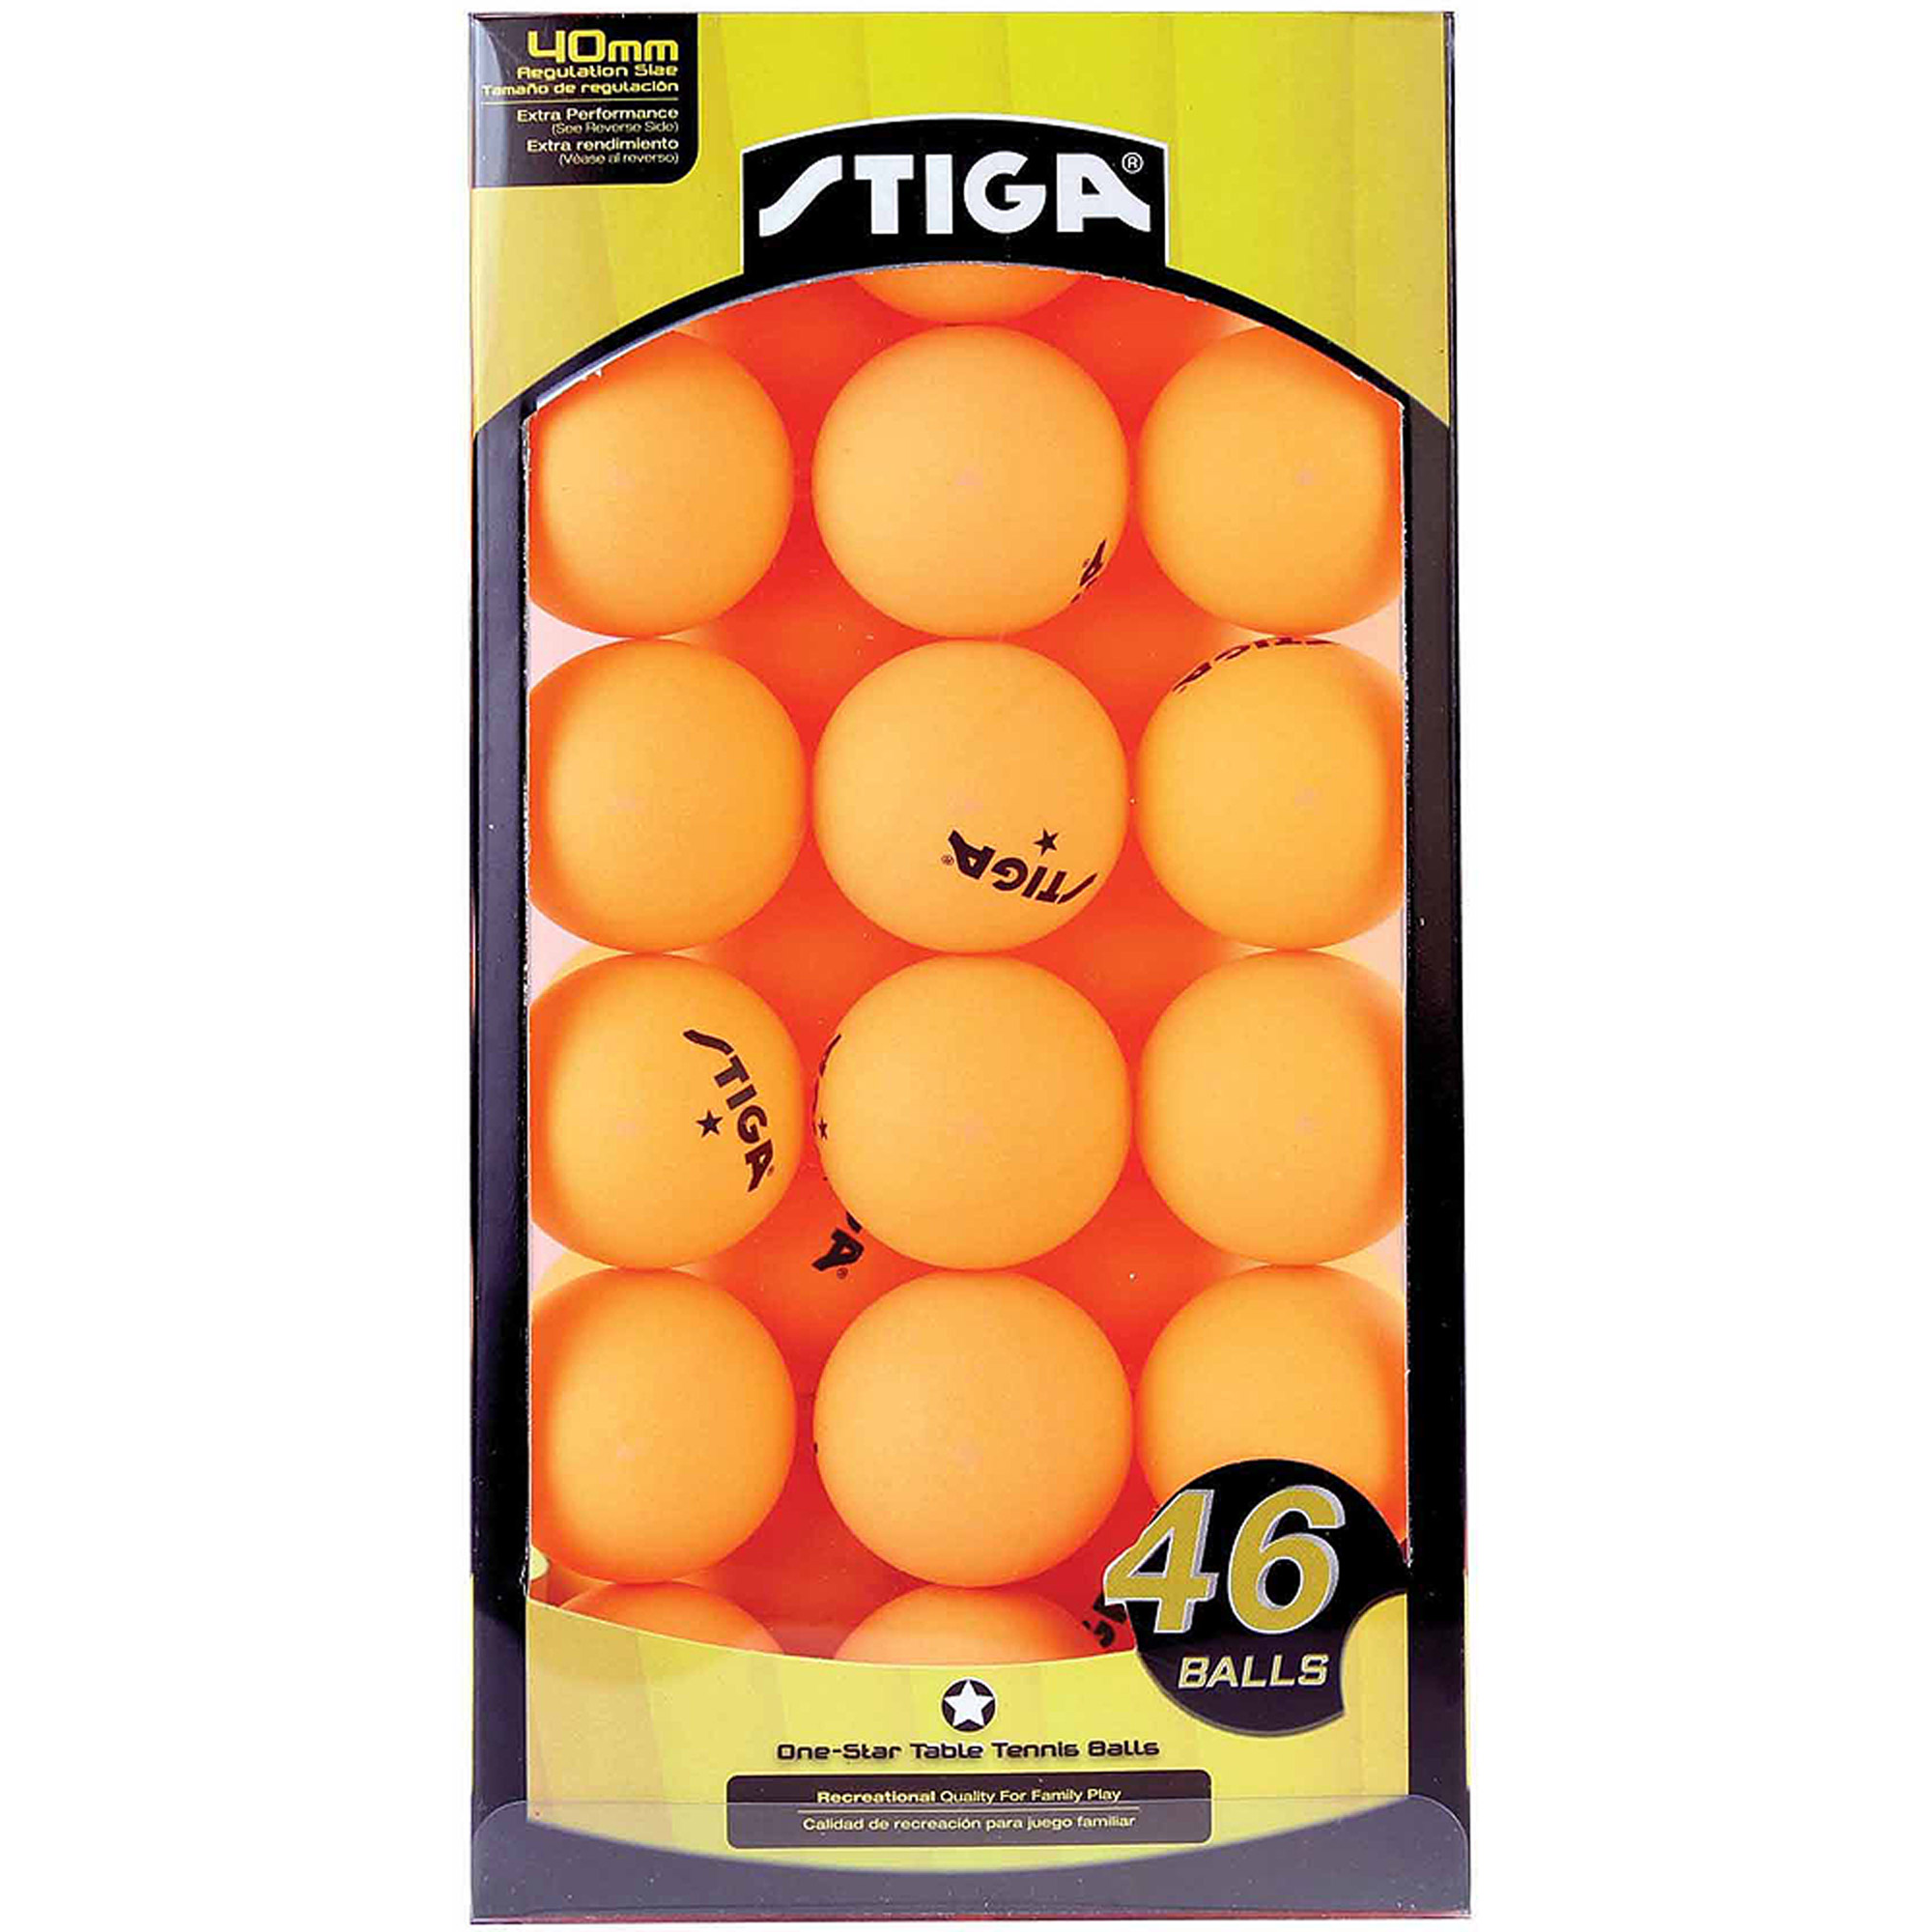 STIGA 1-Star Table Tennis Balls, 46pk